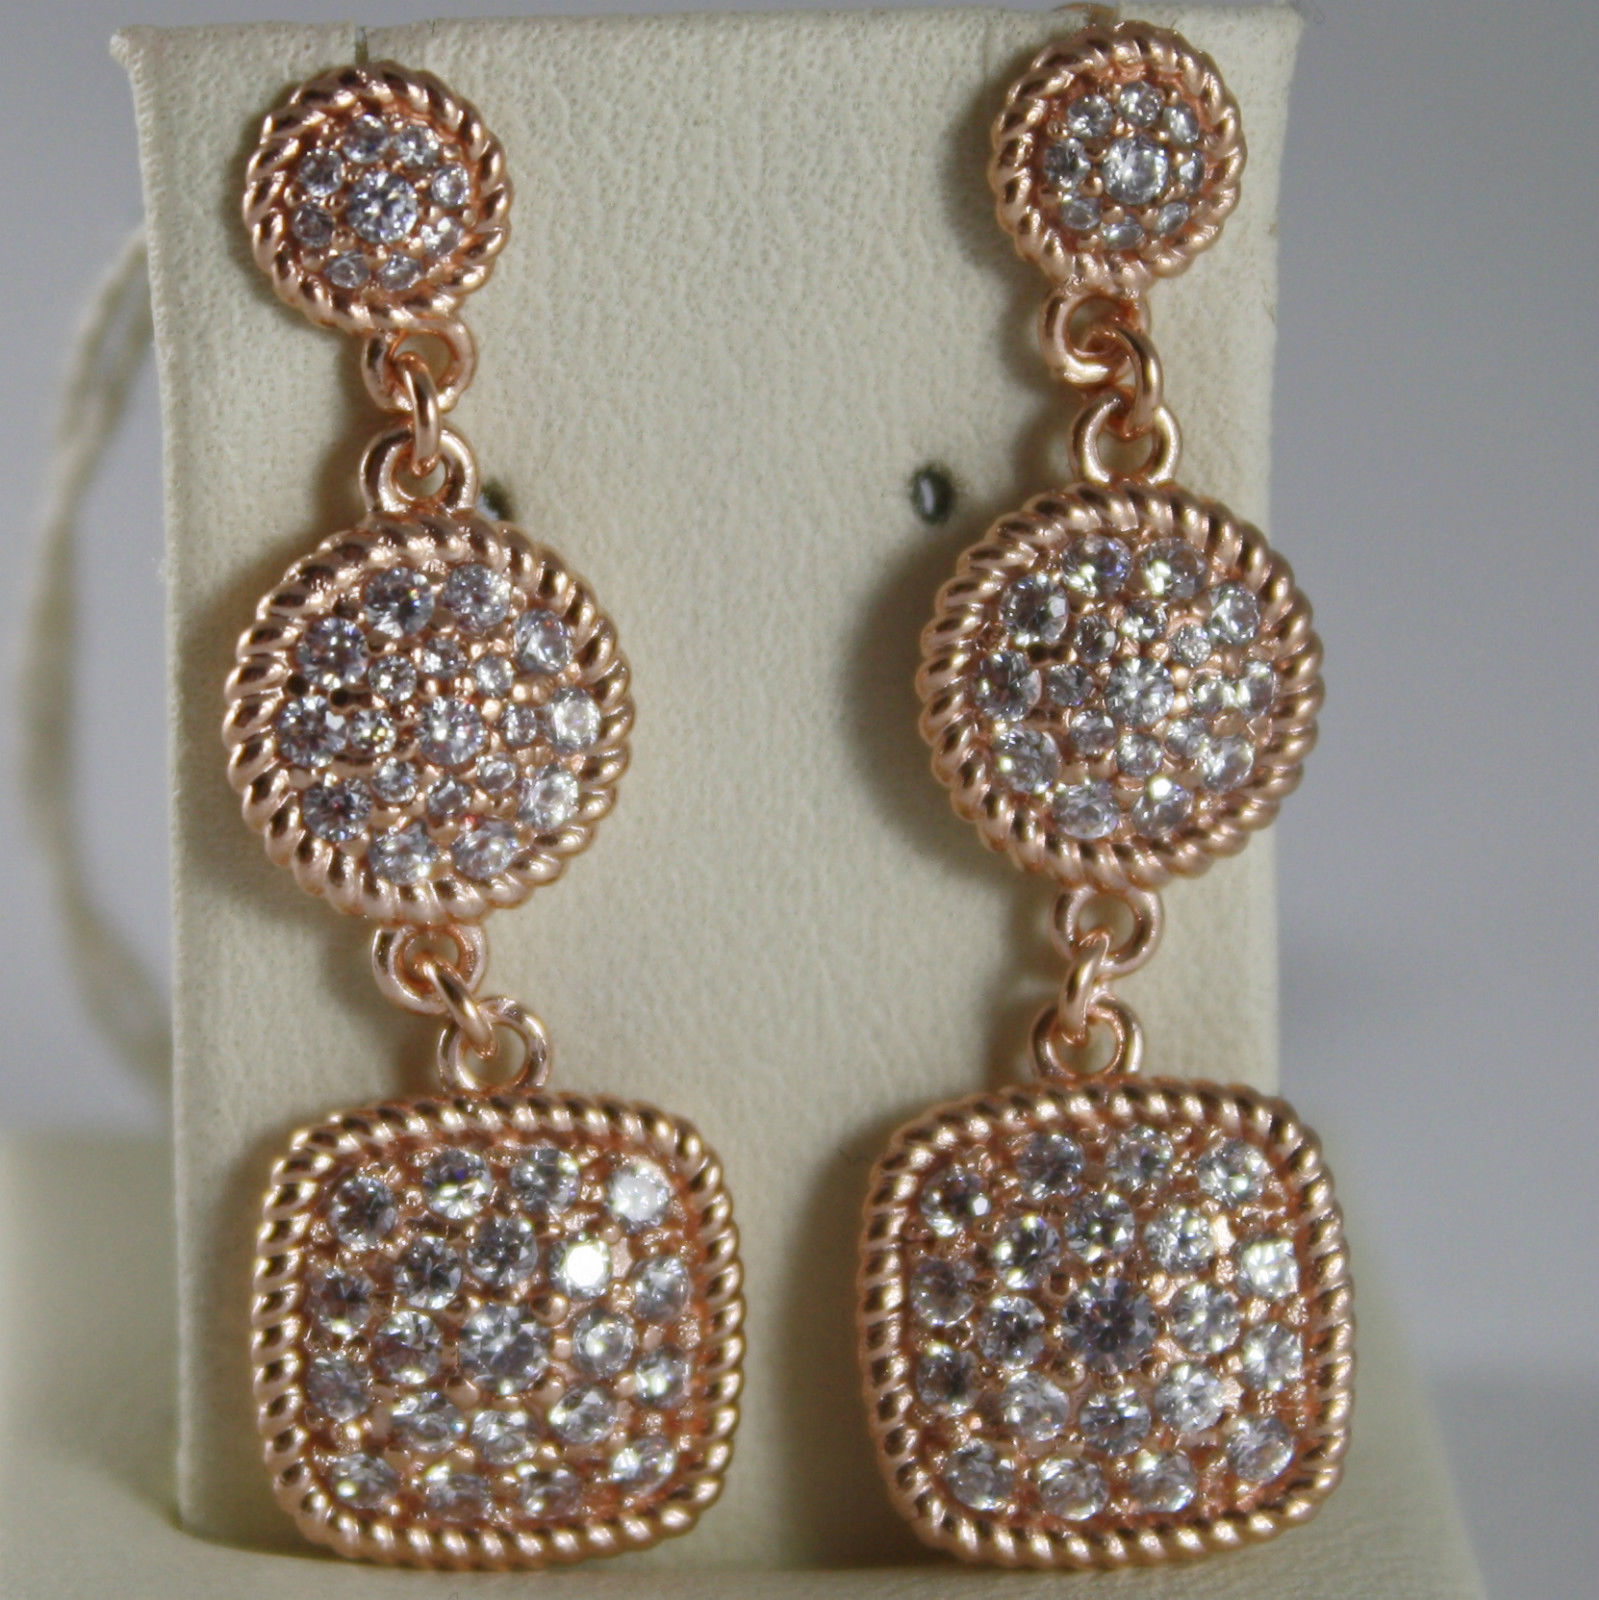 BRONZE EARRINGS SQUARE & CUBIC ZIRCONIA B14ORB19, ROSE, BY REBECCA MADE IN ITALY